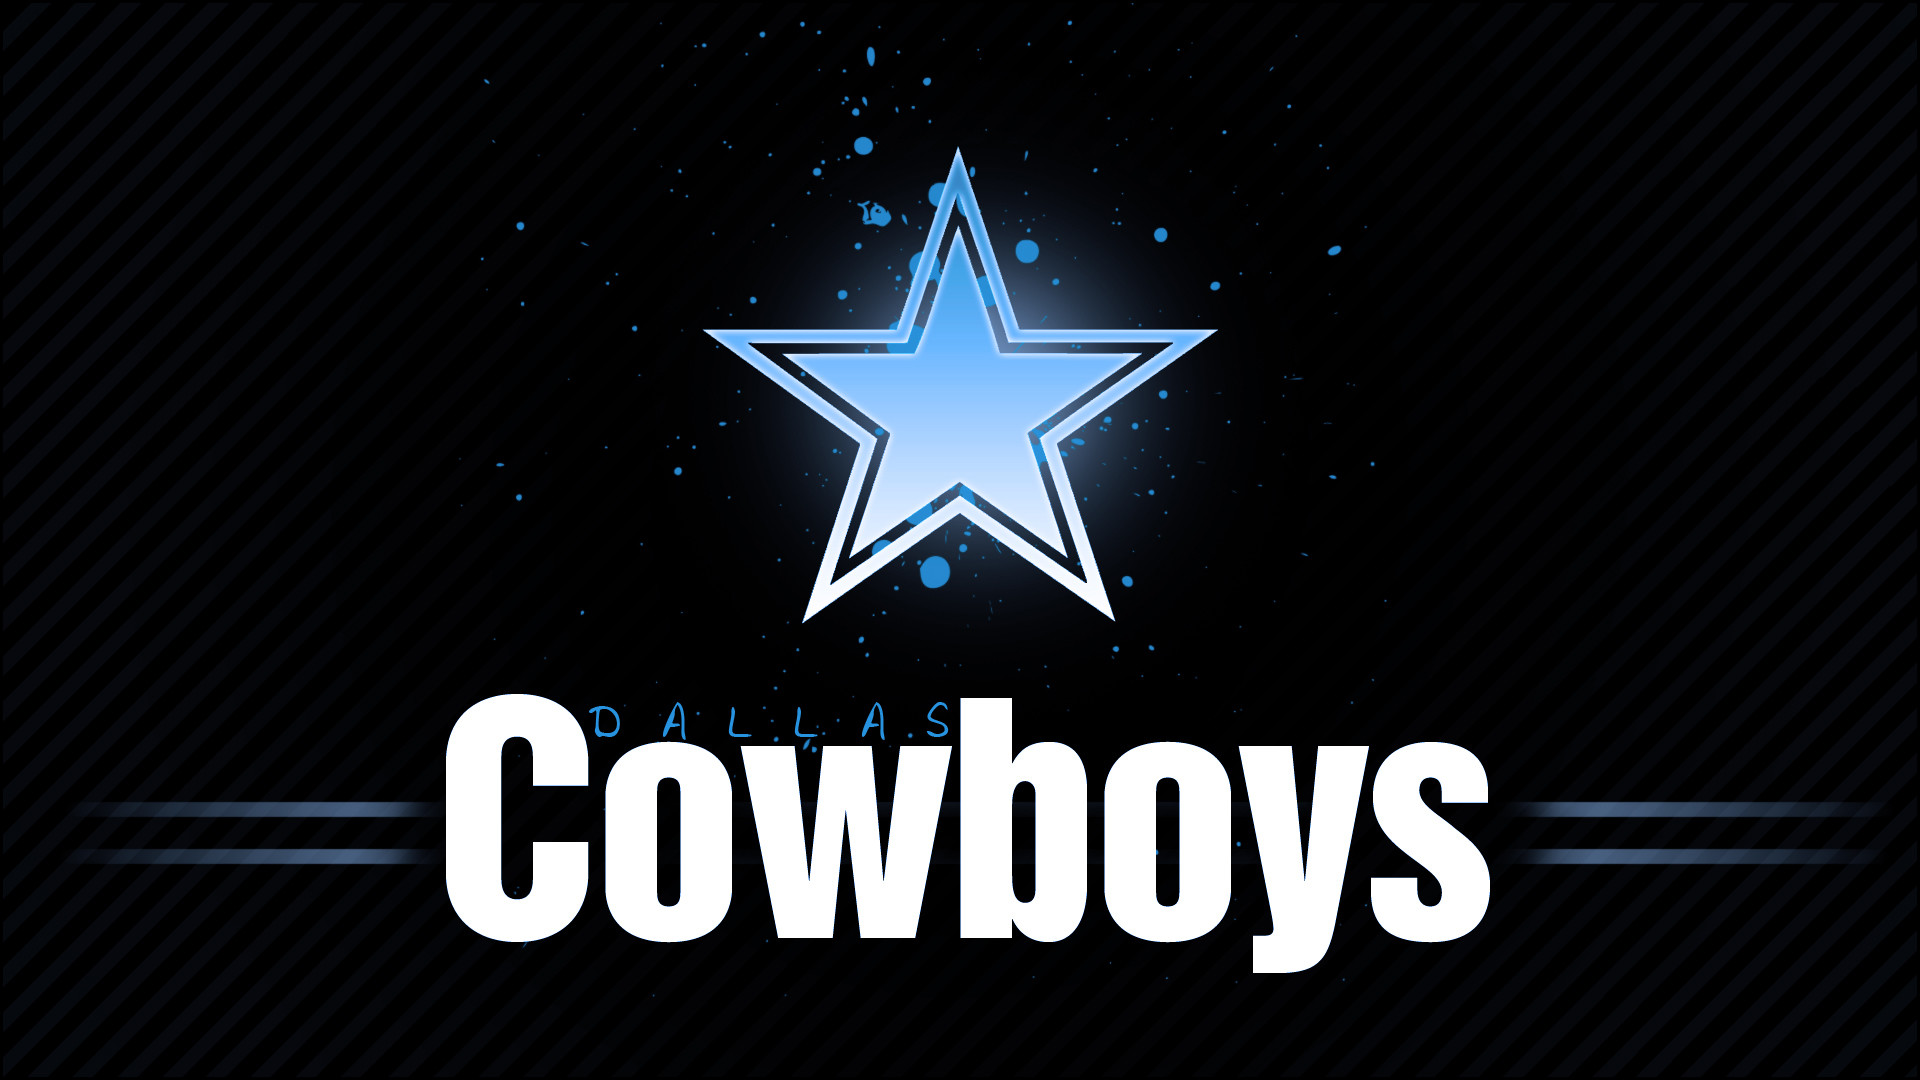 Res: 1920x1080, By Cathie Levitsky – Dallas Cowboys 2015 Photos,  px